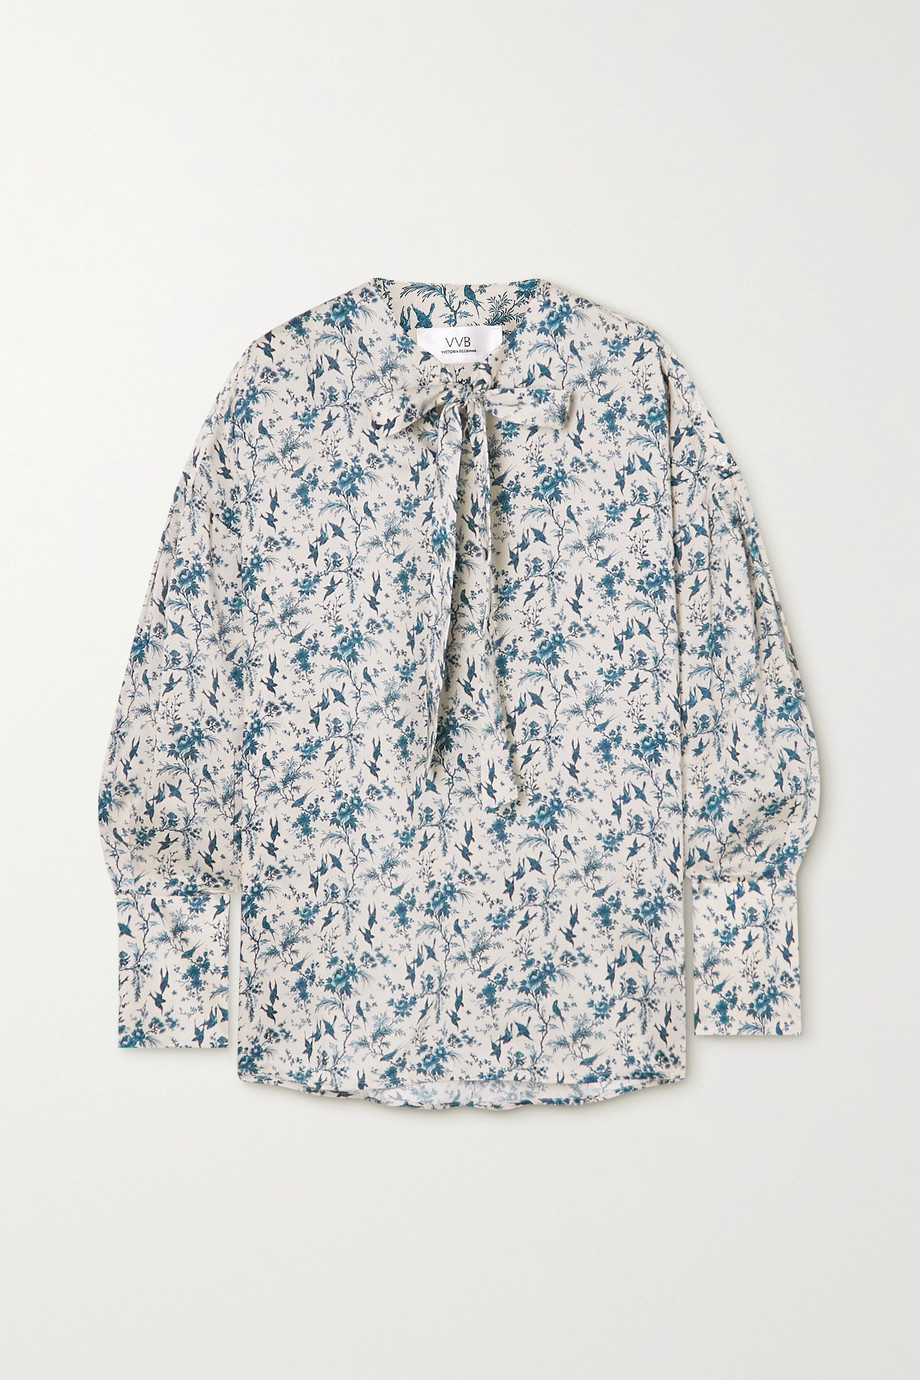 Victoria, Victoria Beckham Tie-neck printed recycled twill blouse